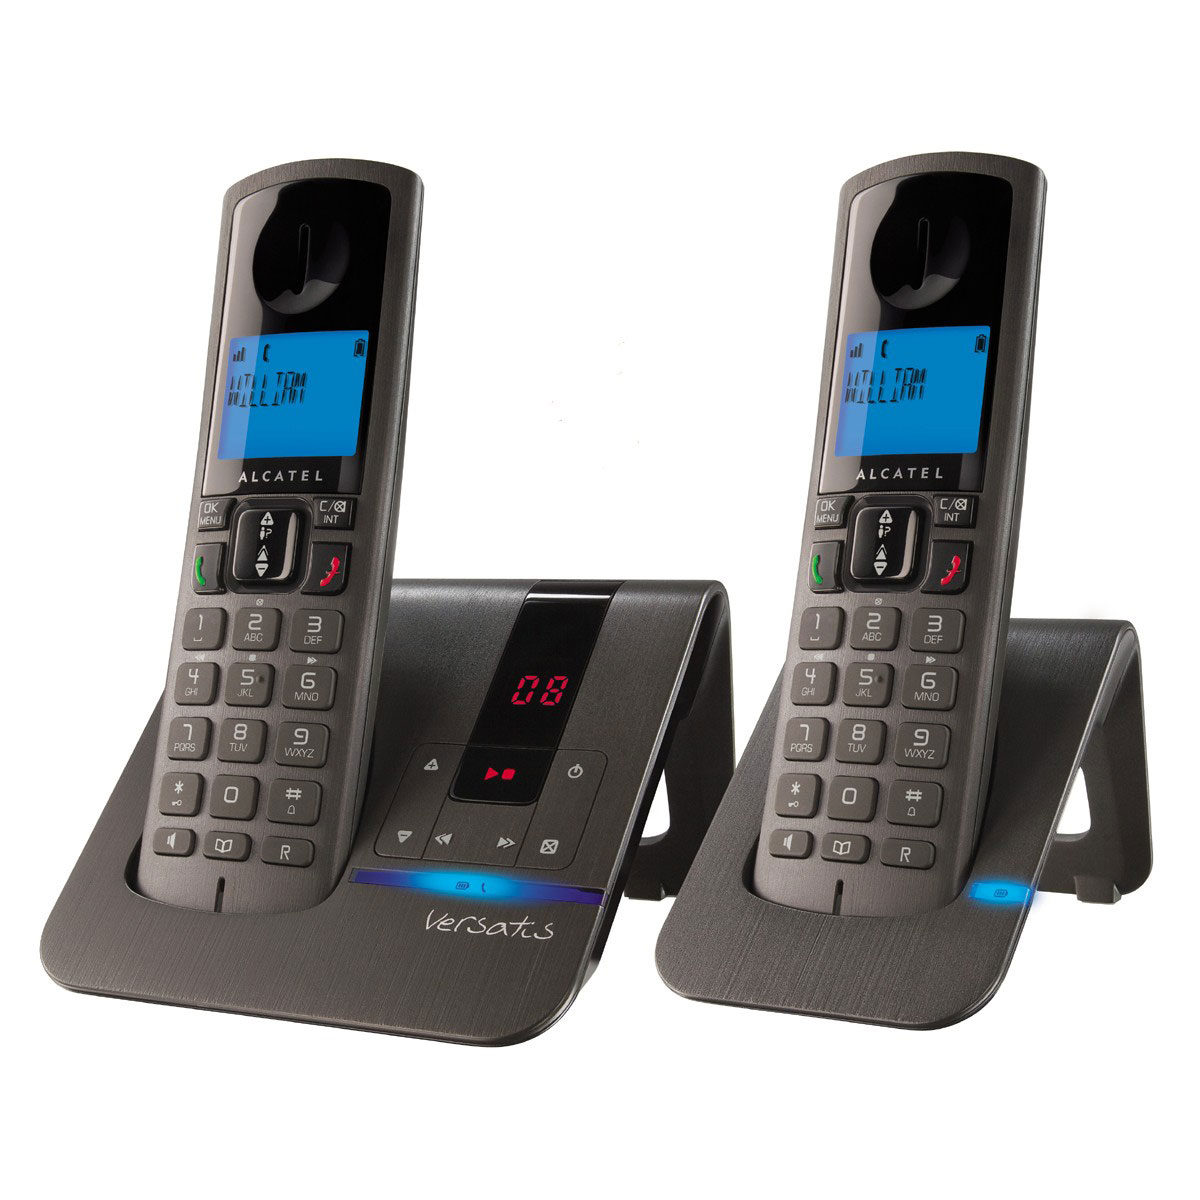 alcatel versatis f250 voice duo noir t l phone sans fil alcatel sur. Black Bedroom Furniture Sets. Home Design Ideas